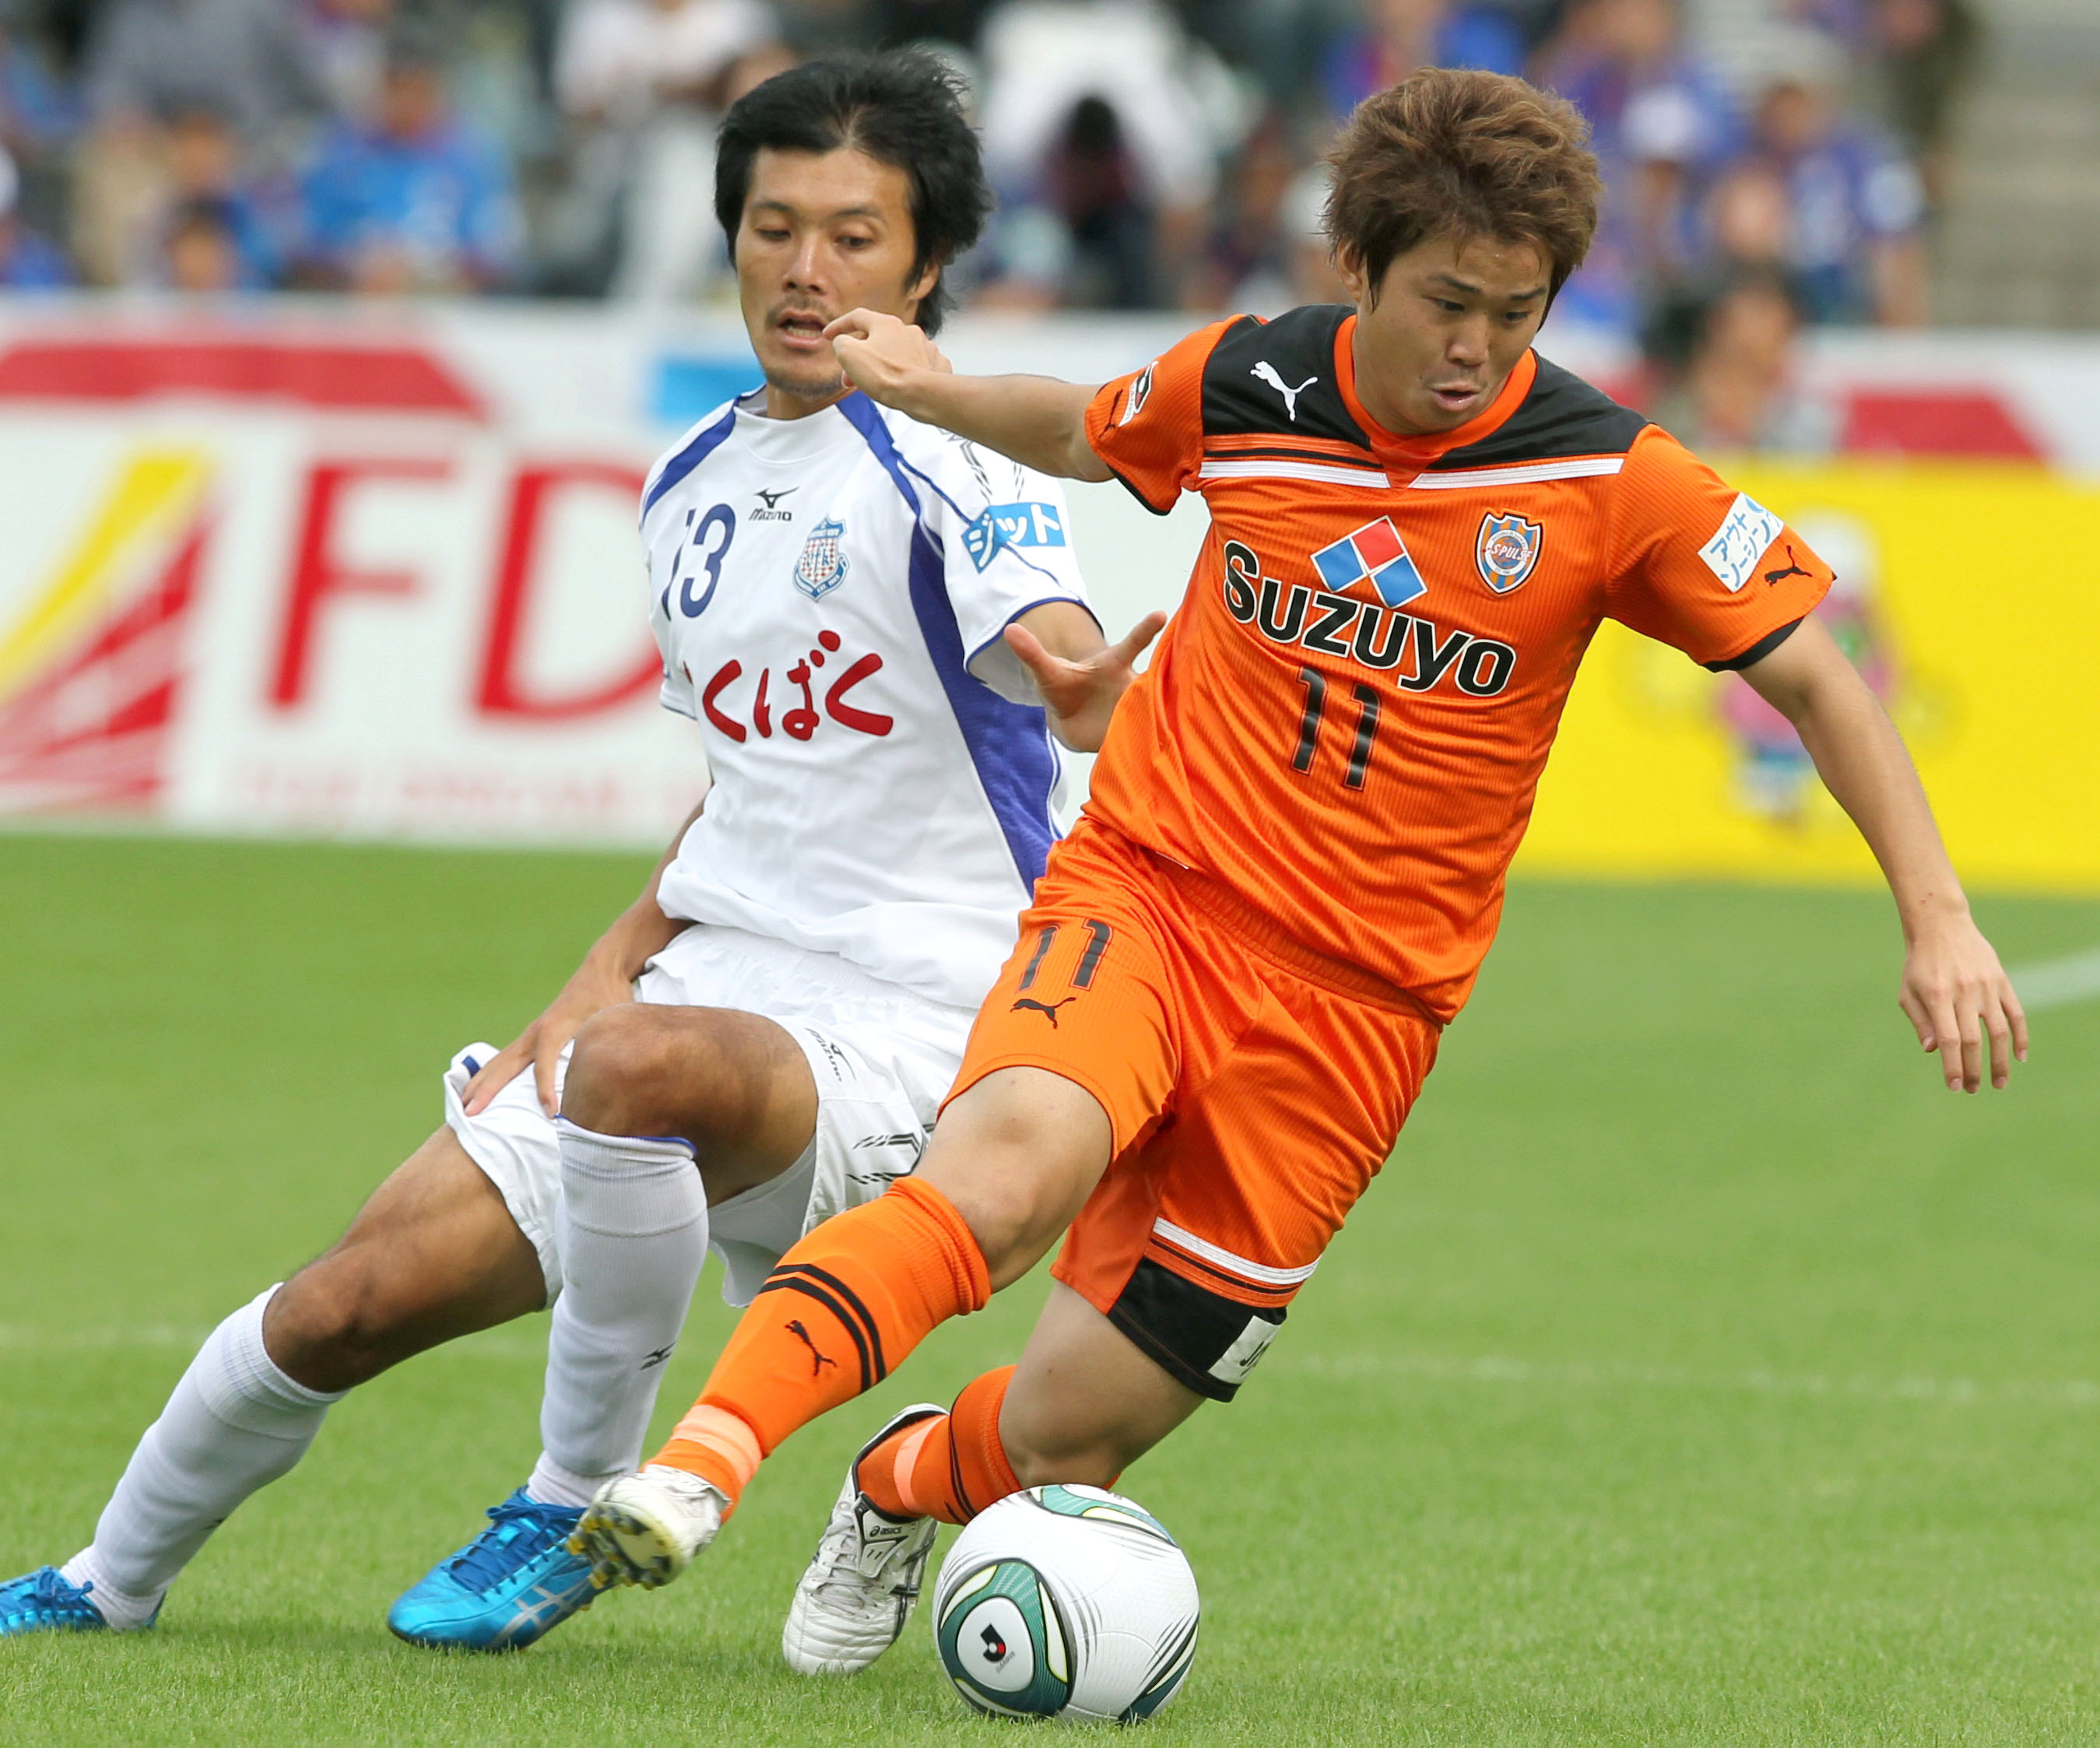 Promoted sides seek to make mark against J. League powers